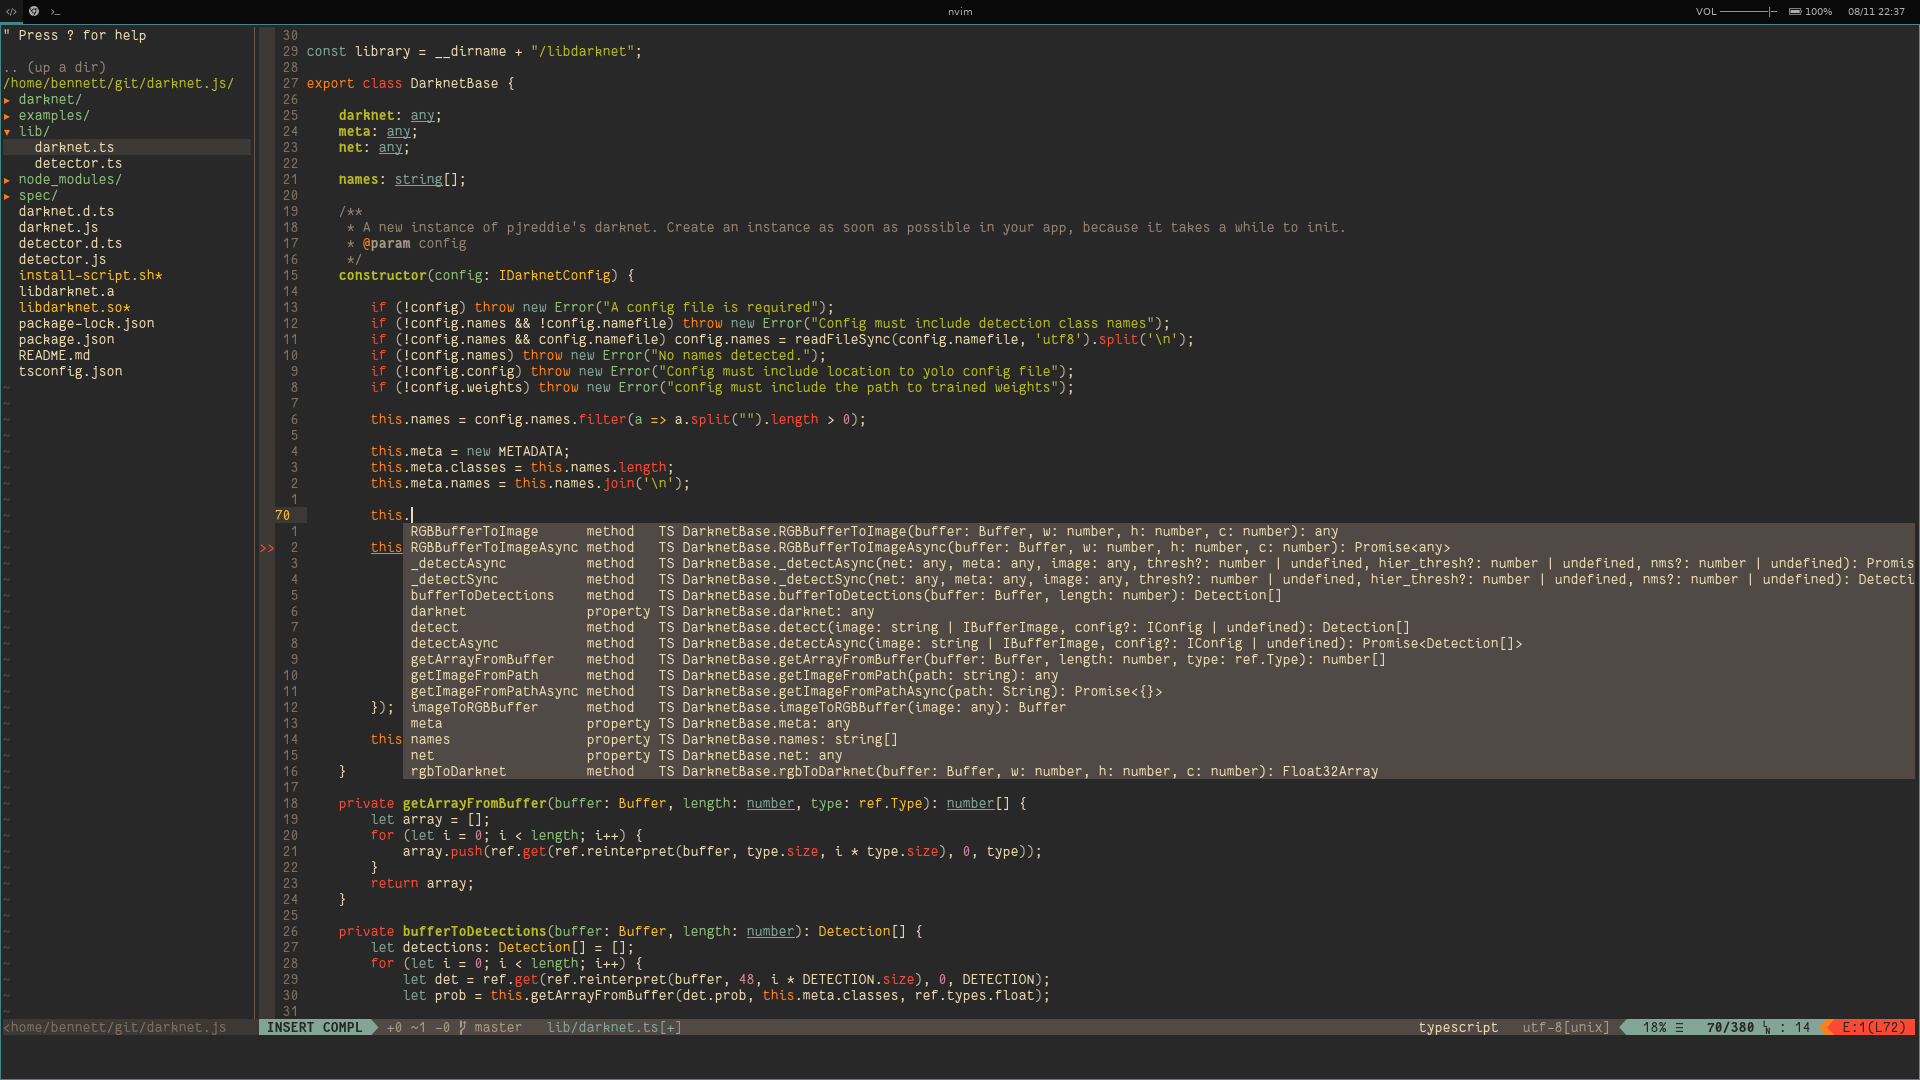 Coding some codes